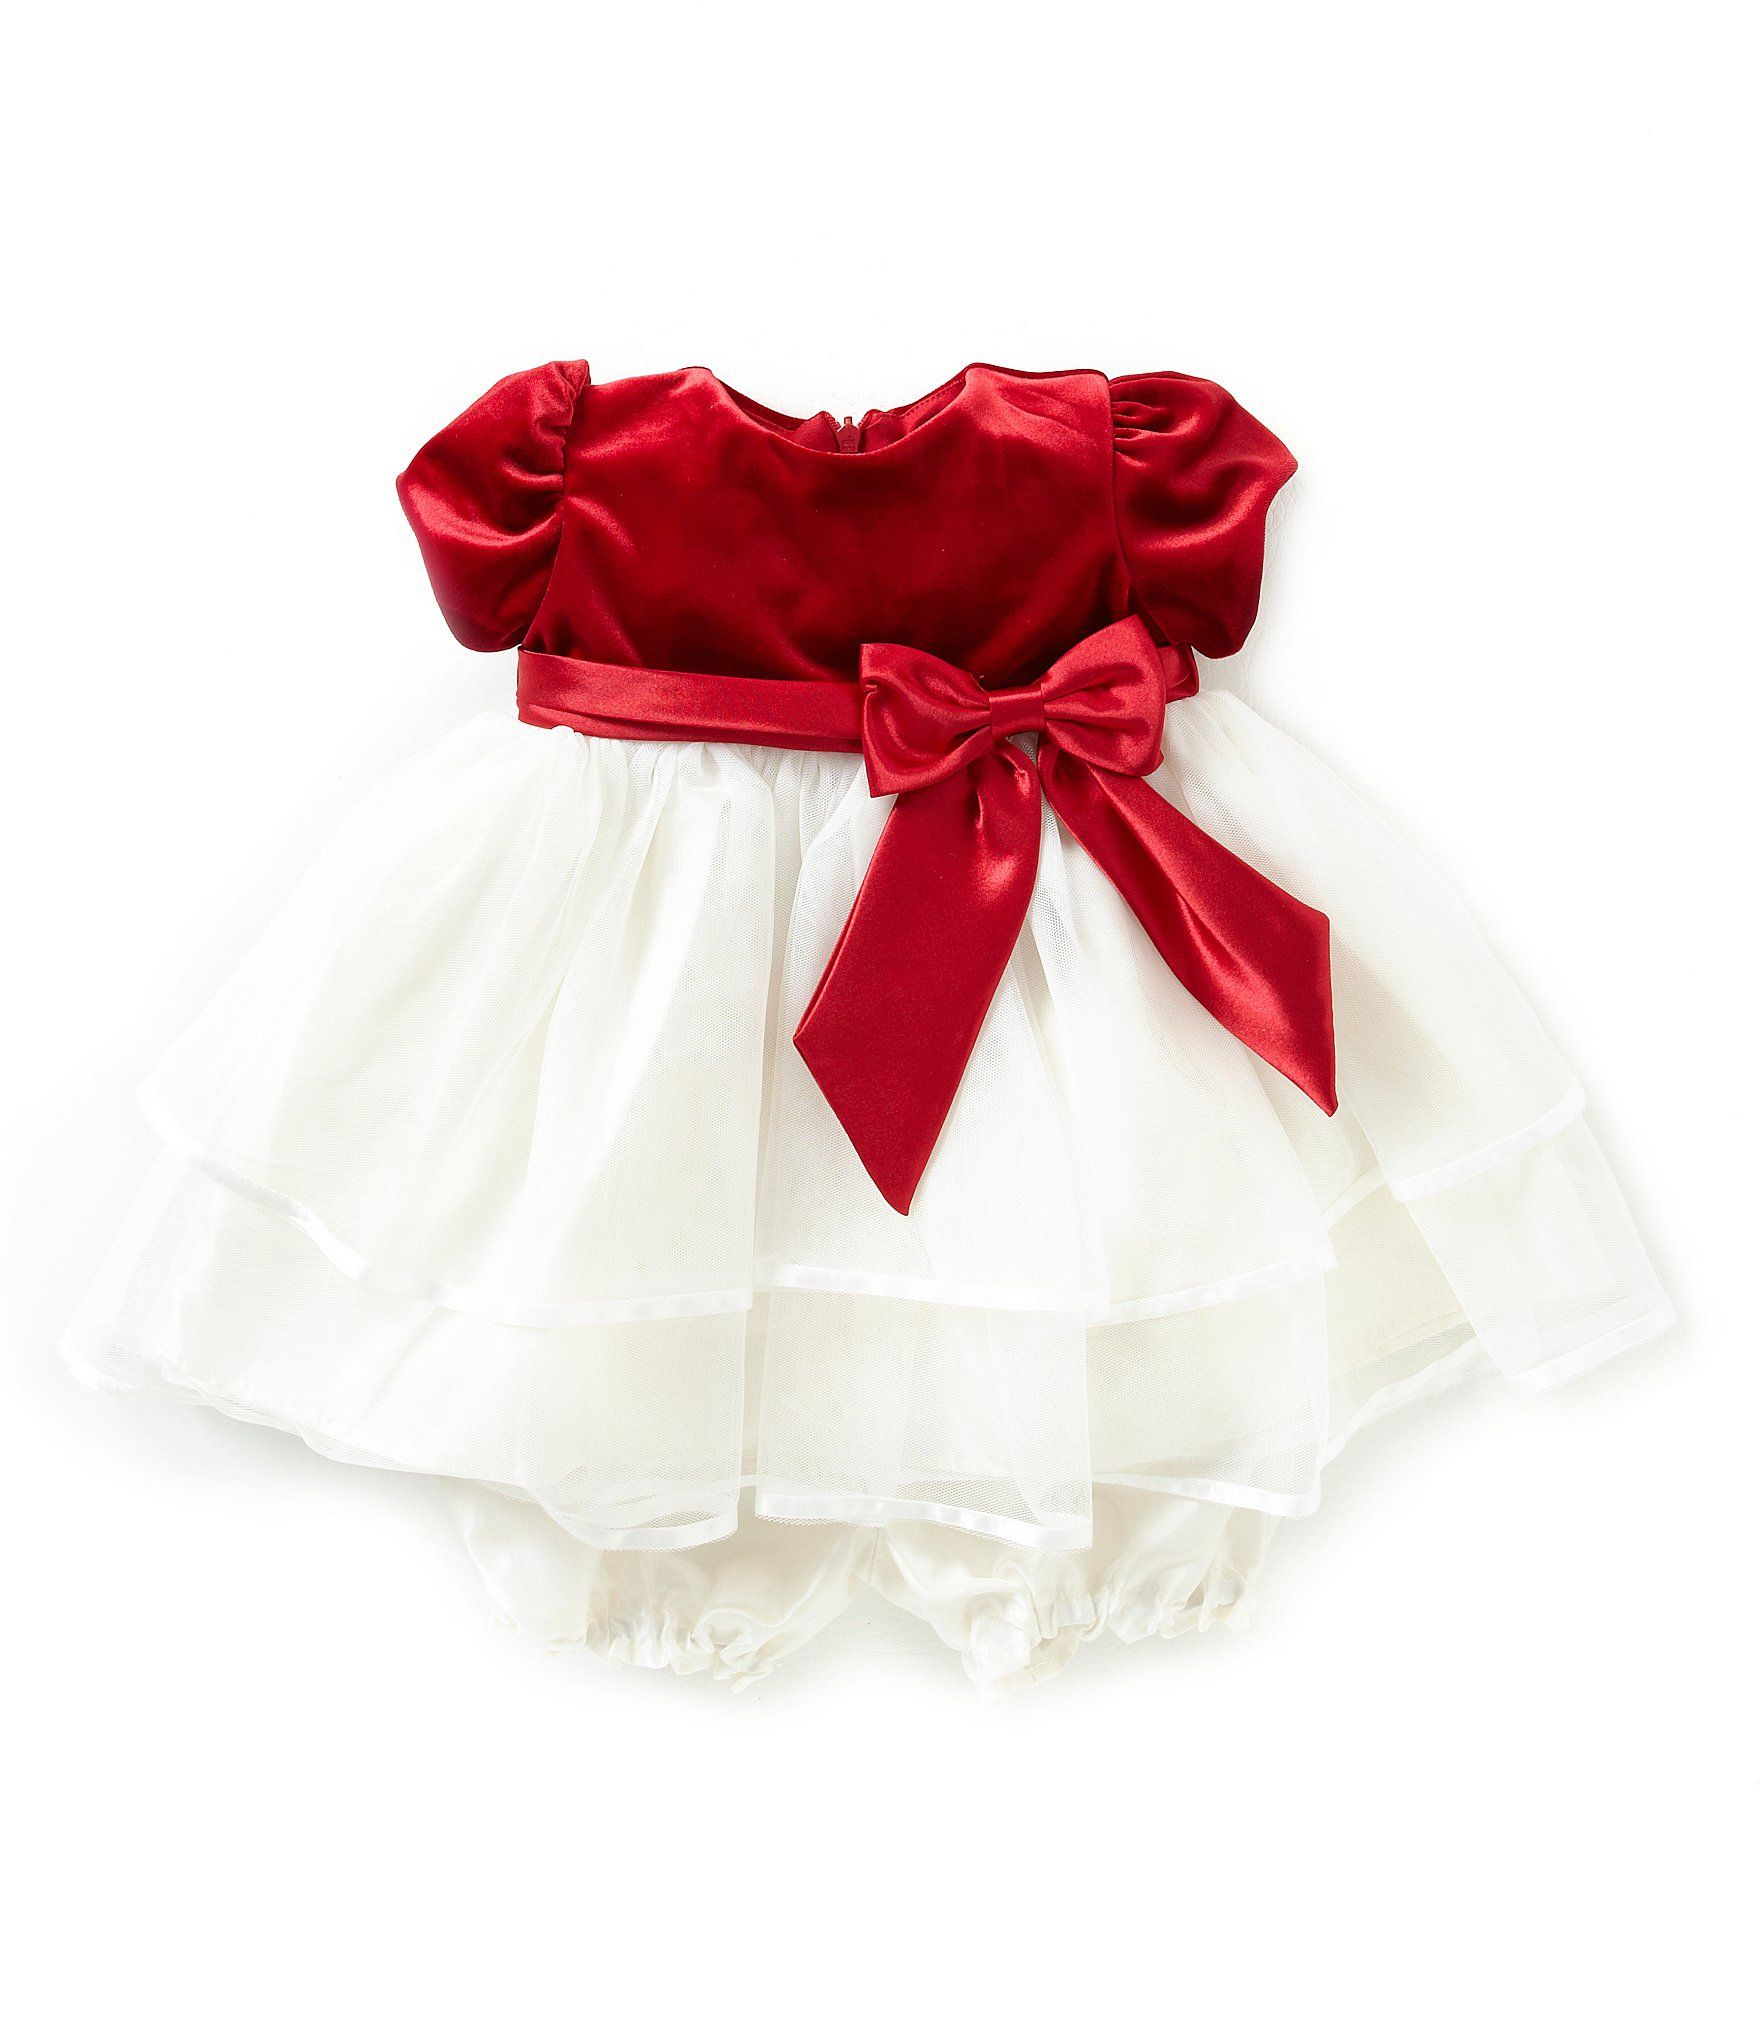 Jayne Copeland 3 24 Months Tiered Christmas Holiday Dress